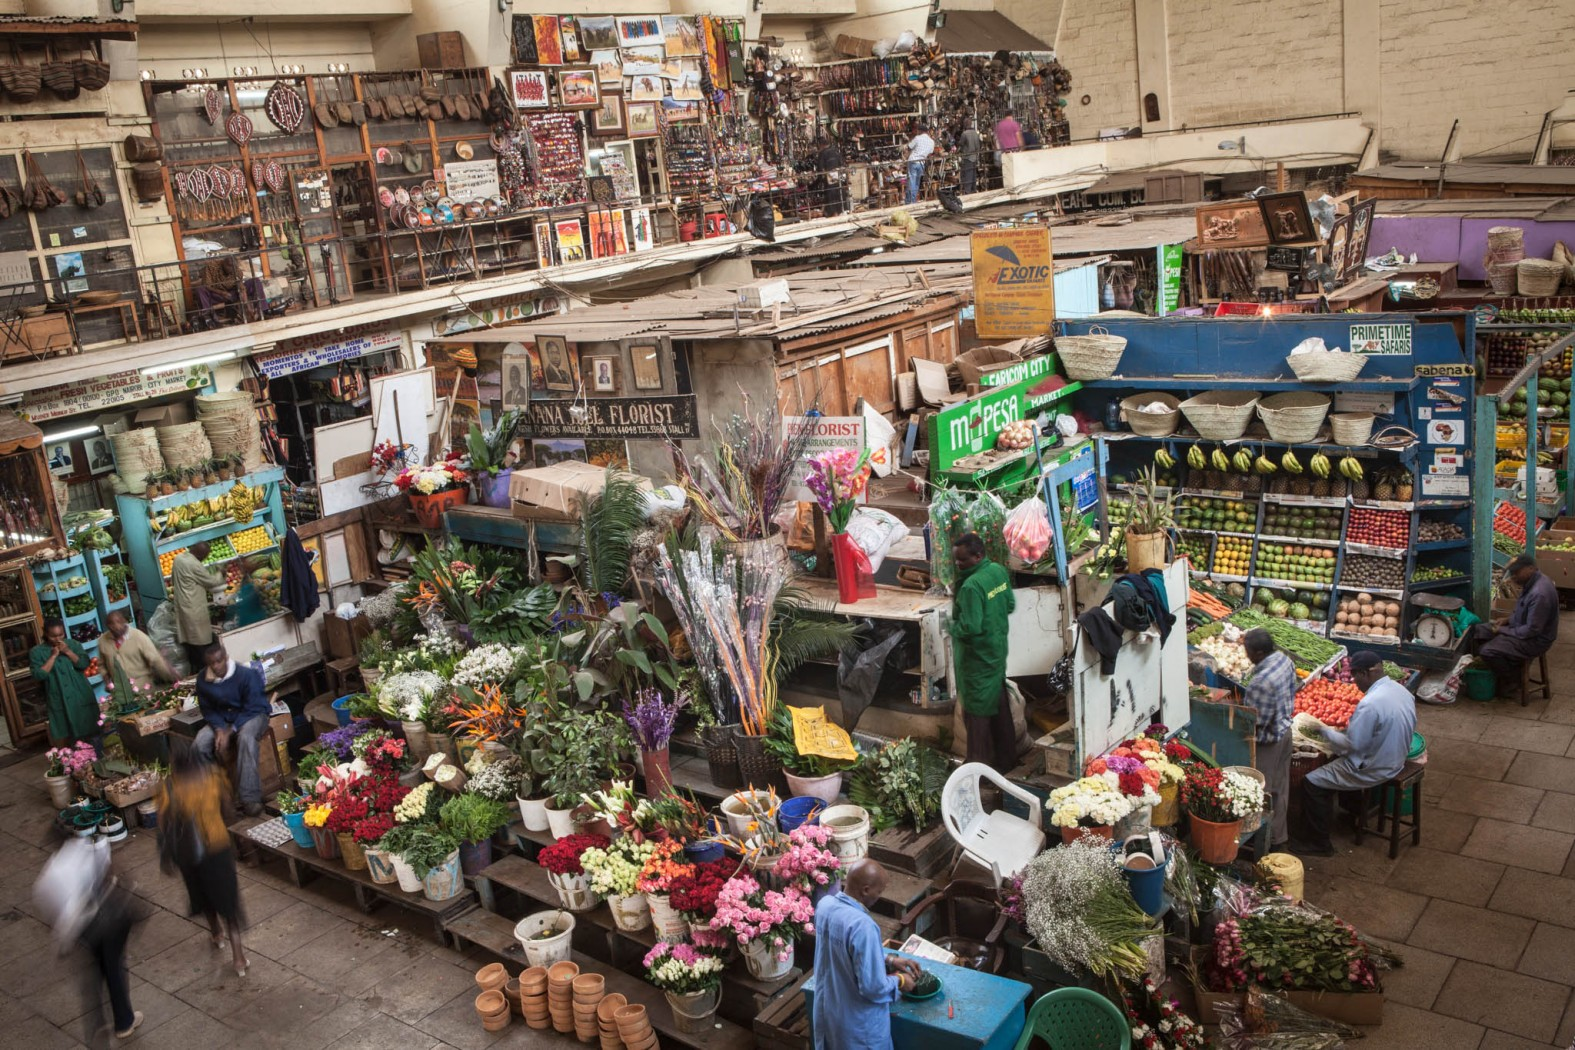 Places to visit in Nairobi? City Market